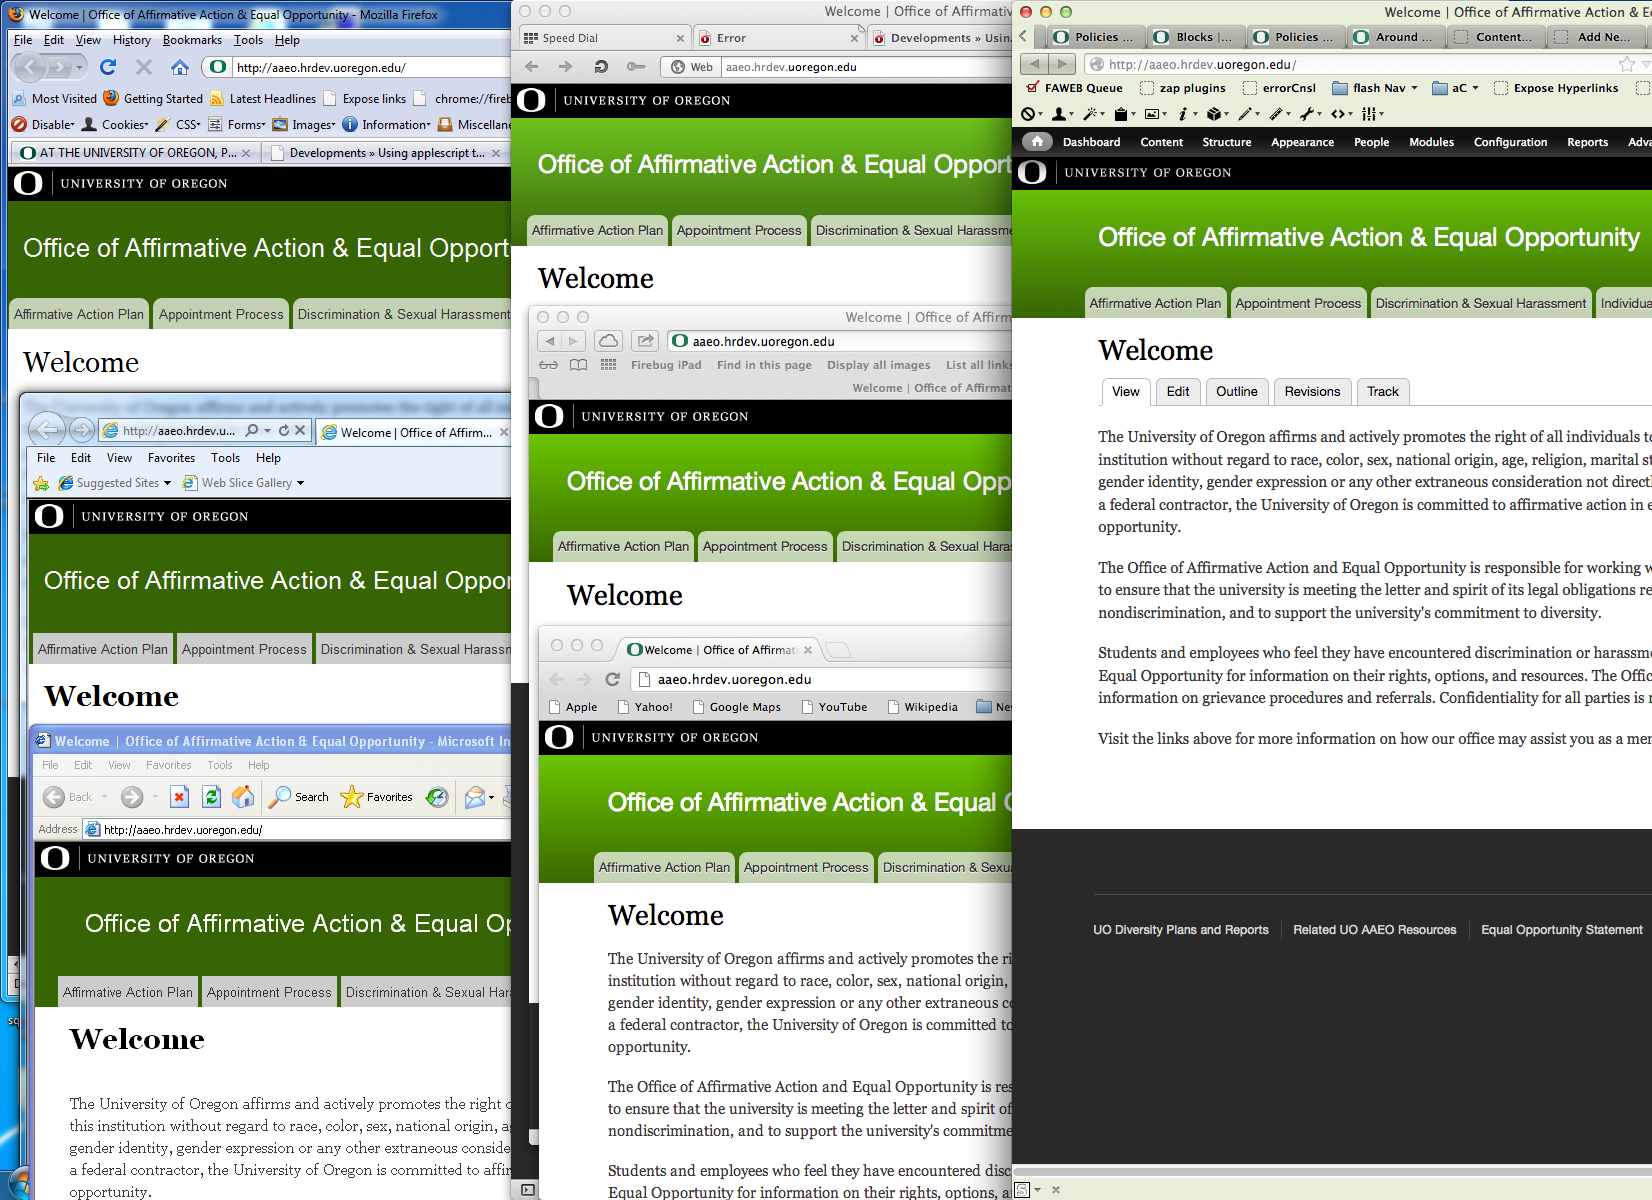 Screen Shot of all 7 browsers open across 1 mac and 2 VMs